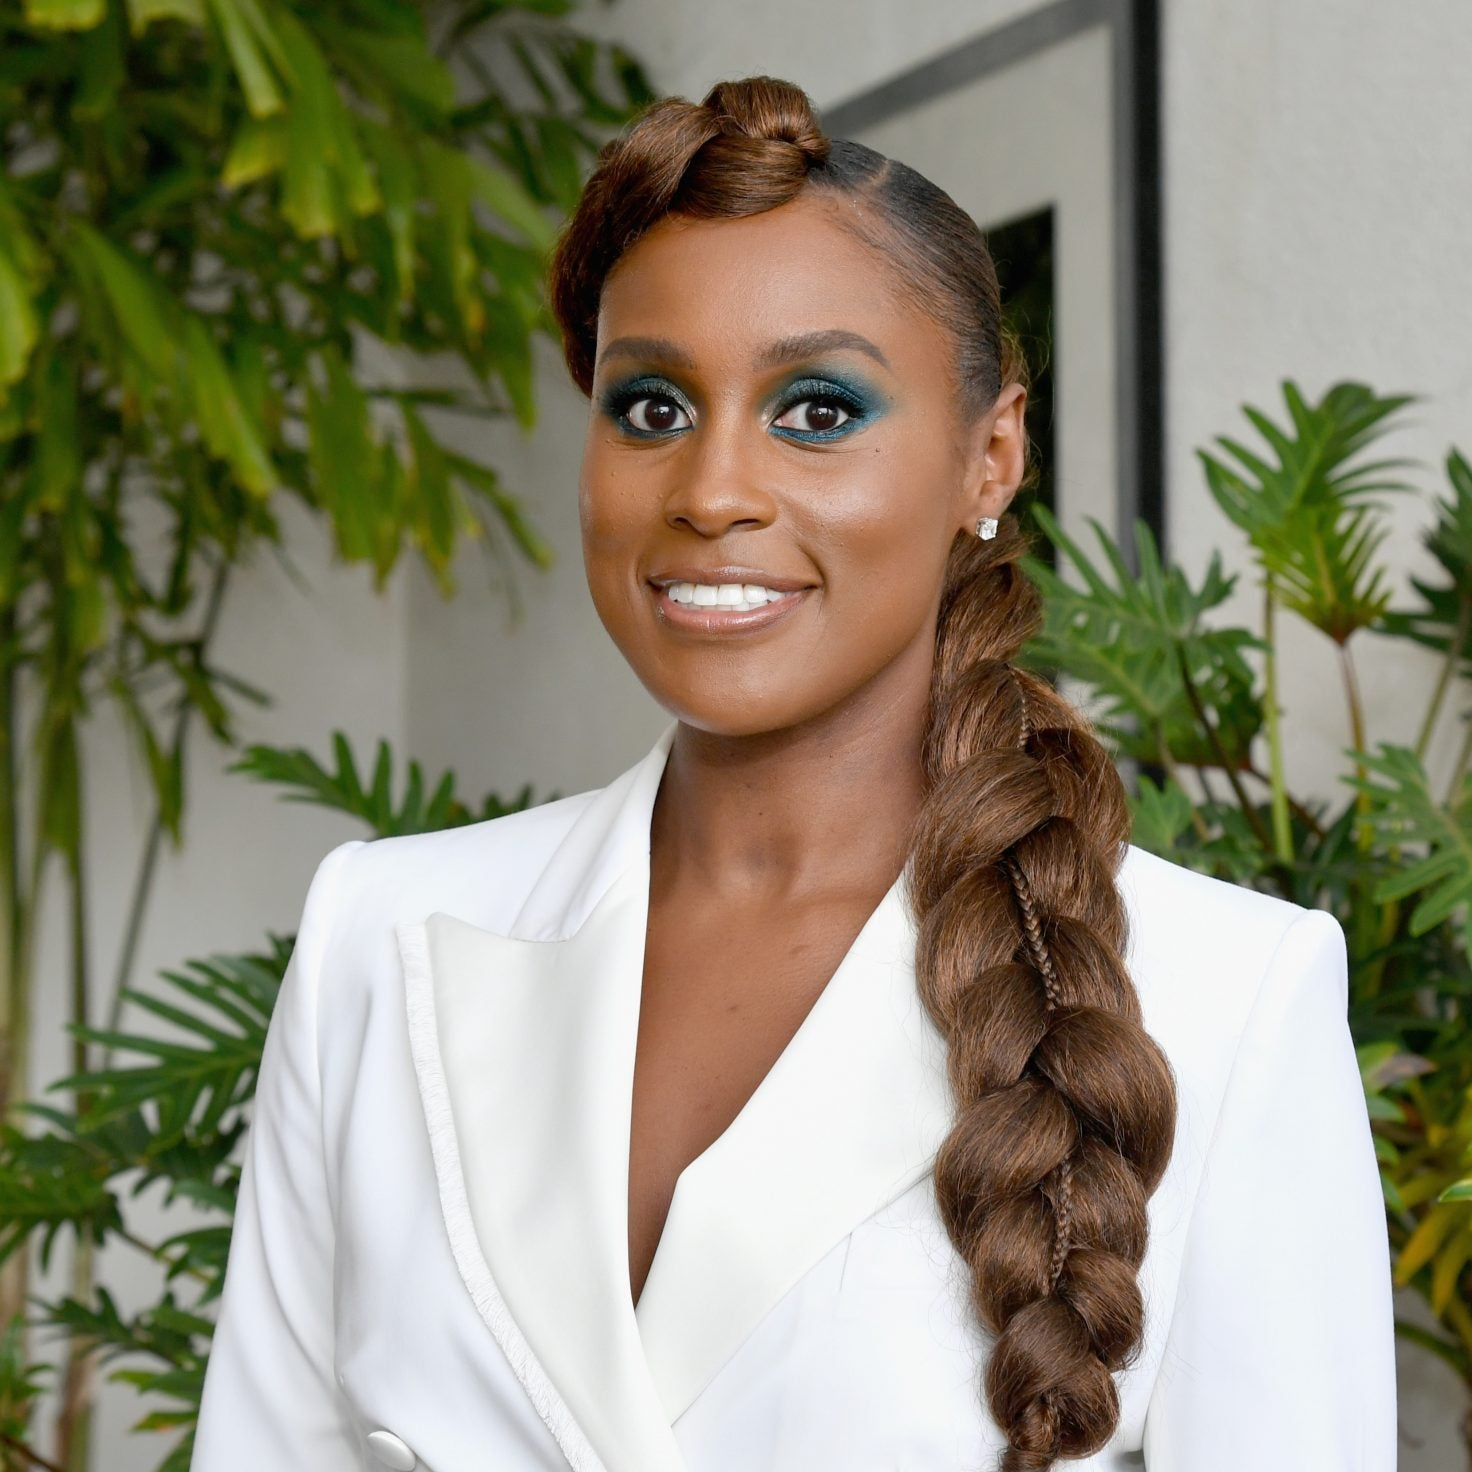 Issa Rae Is Not Rebooting 'Set It Off' Despite Rumors